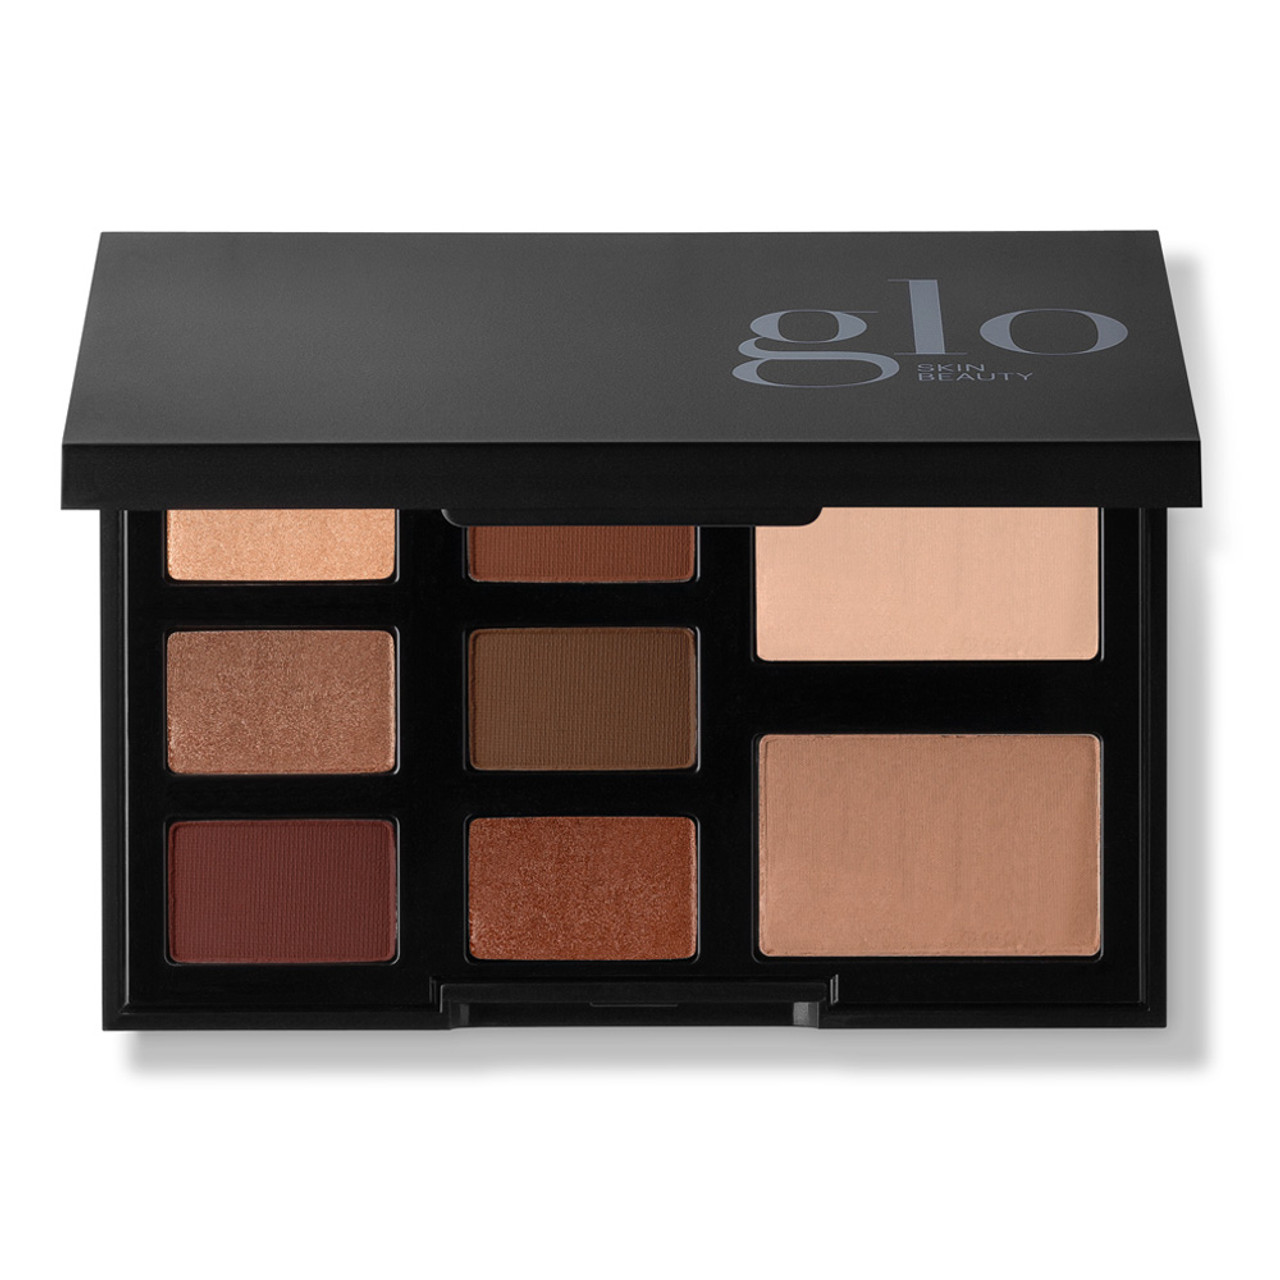 glo Skin Beauty Eye Shadow Palette-Elemental Eye